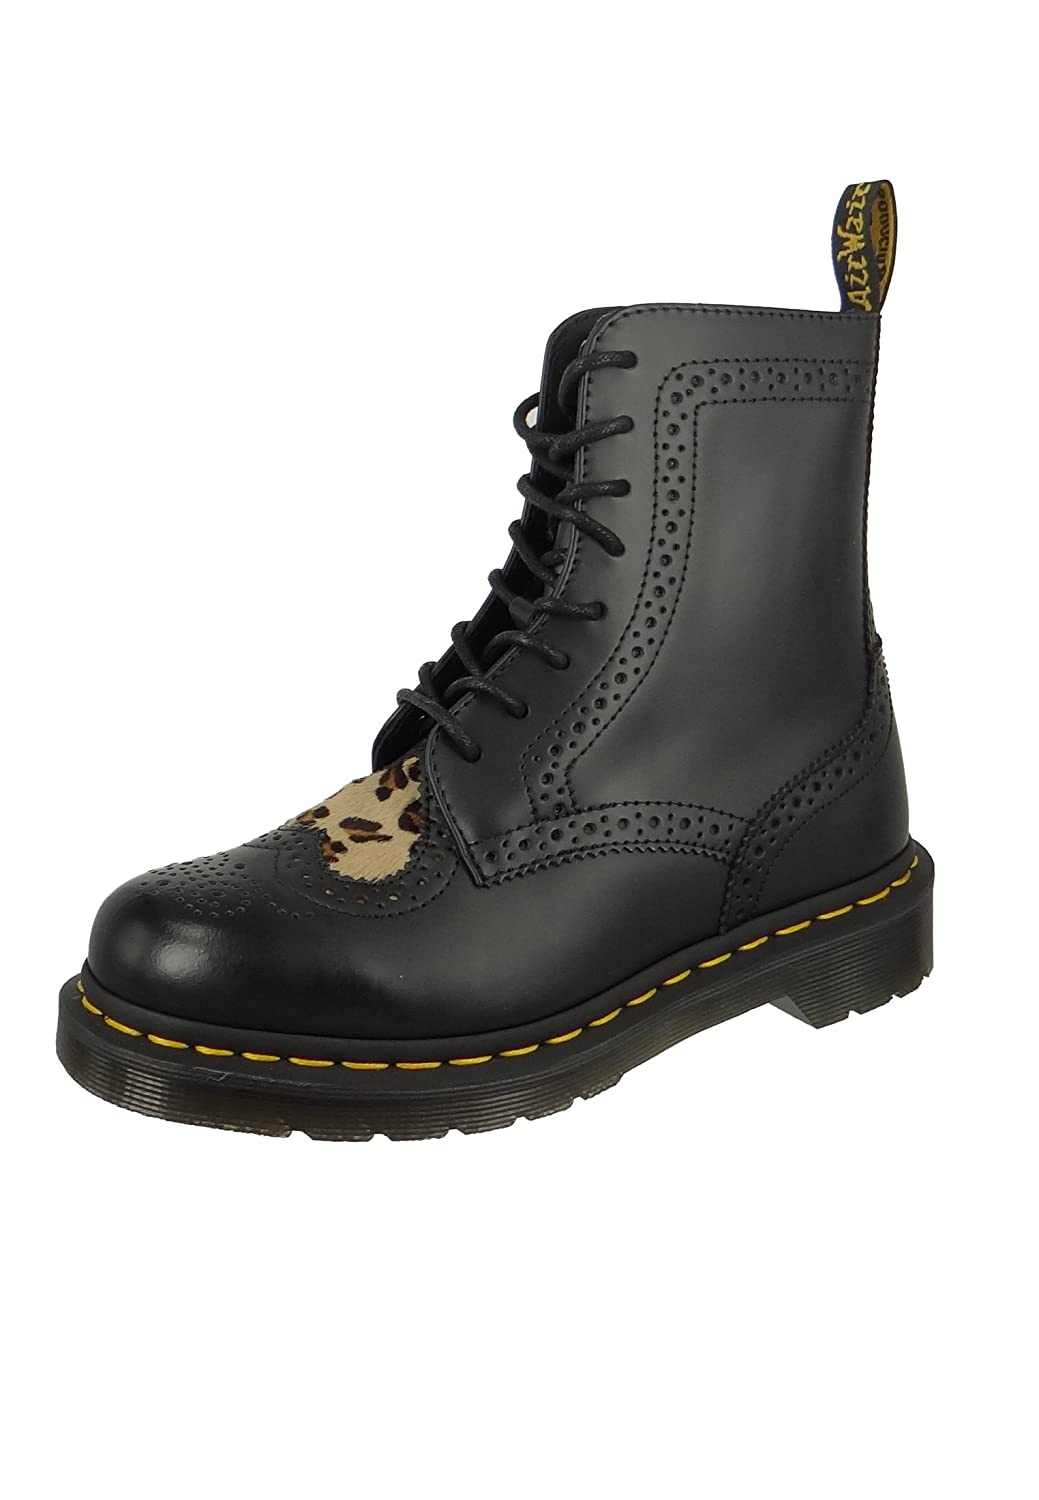 Dr. Martens Women's Bentley II HRT Brogue Boots B071GN7JX8 7 B(M) US|Black/Medium Leopard